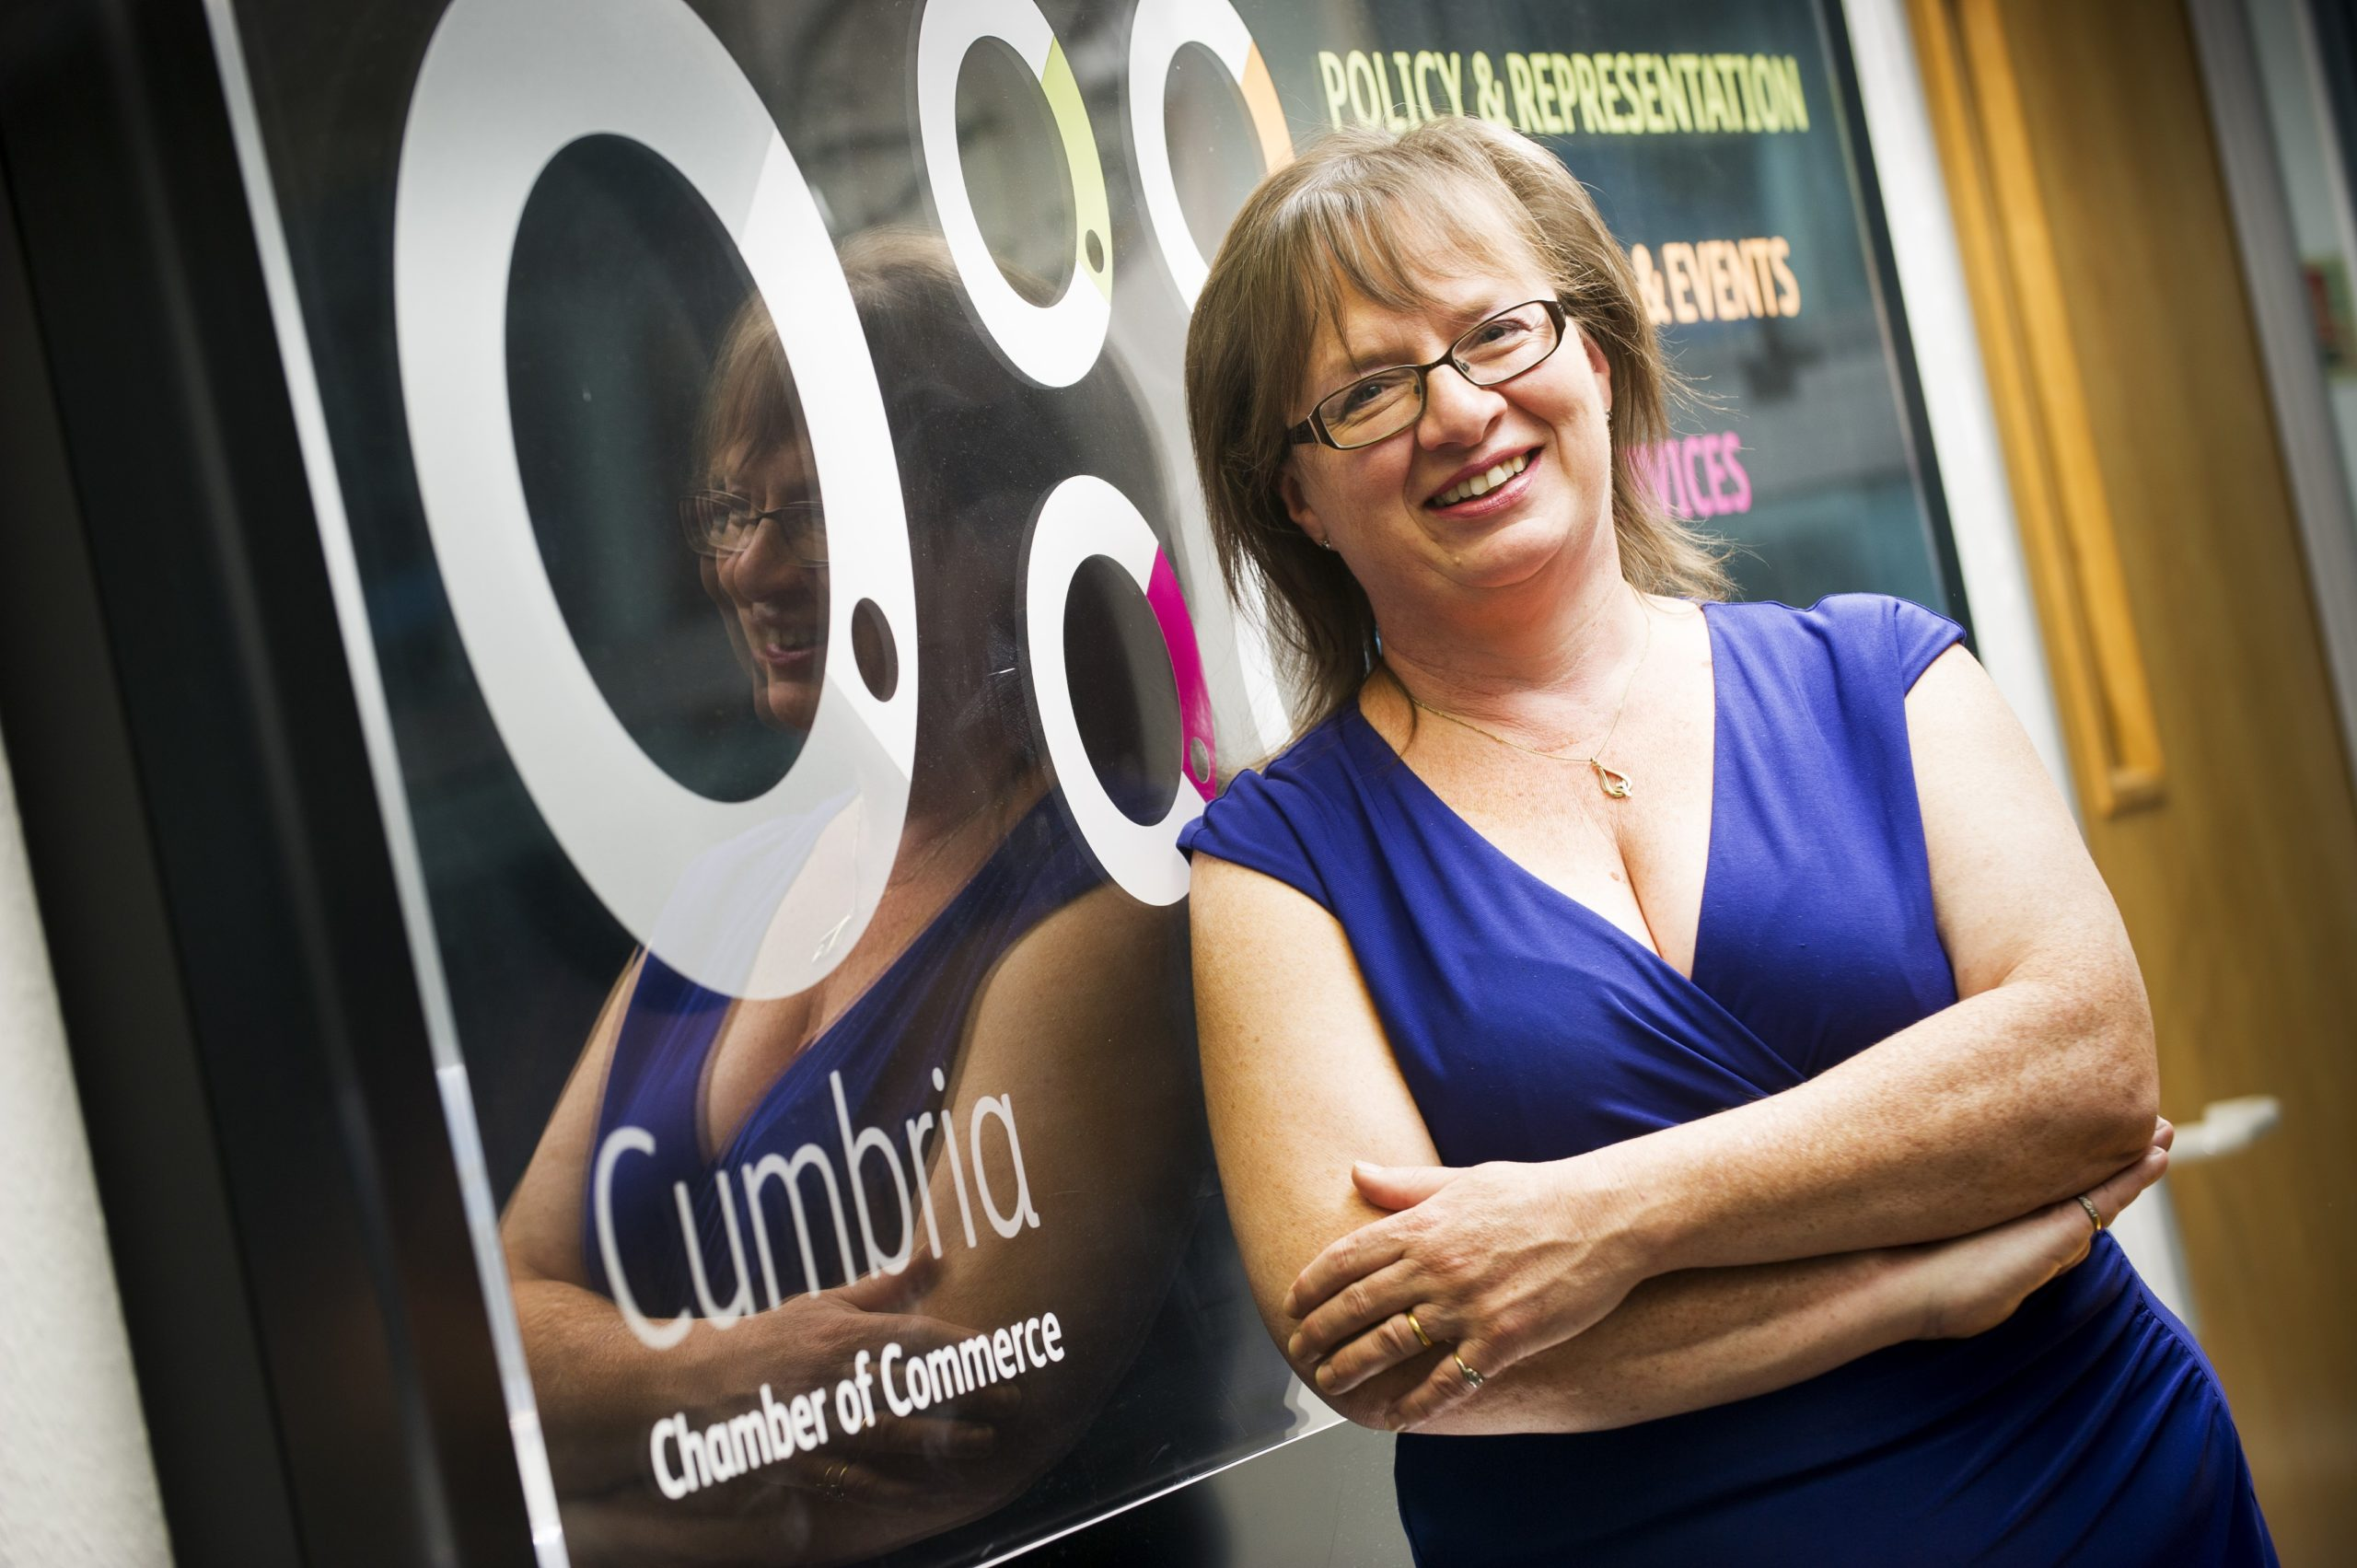 Cumbria Chamber of Commerce Managing Director Suzanne Caldwell